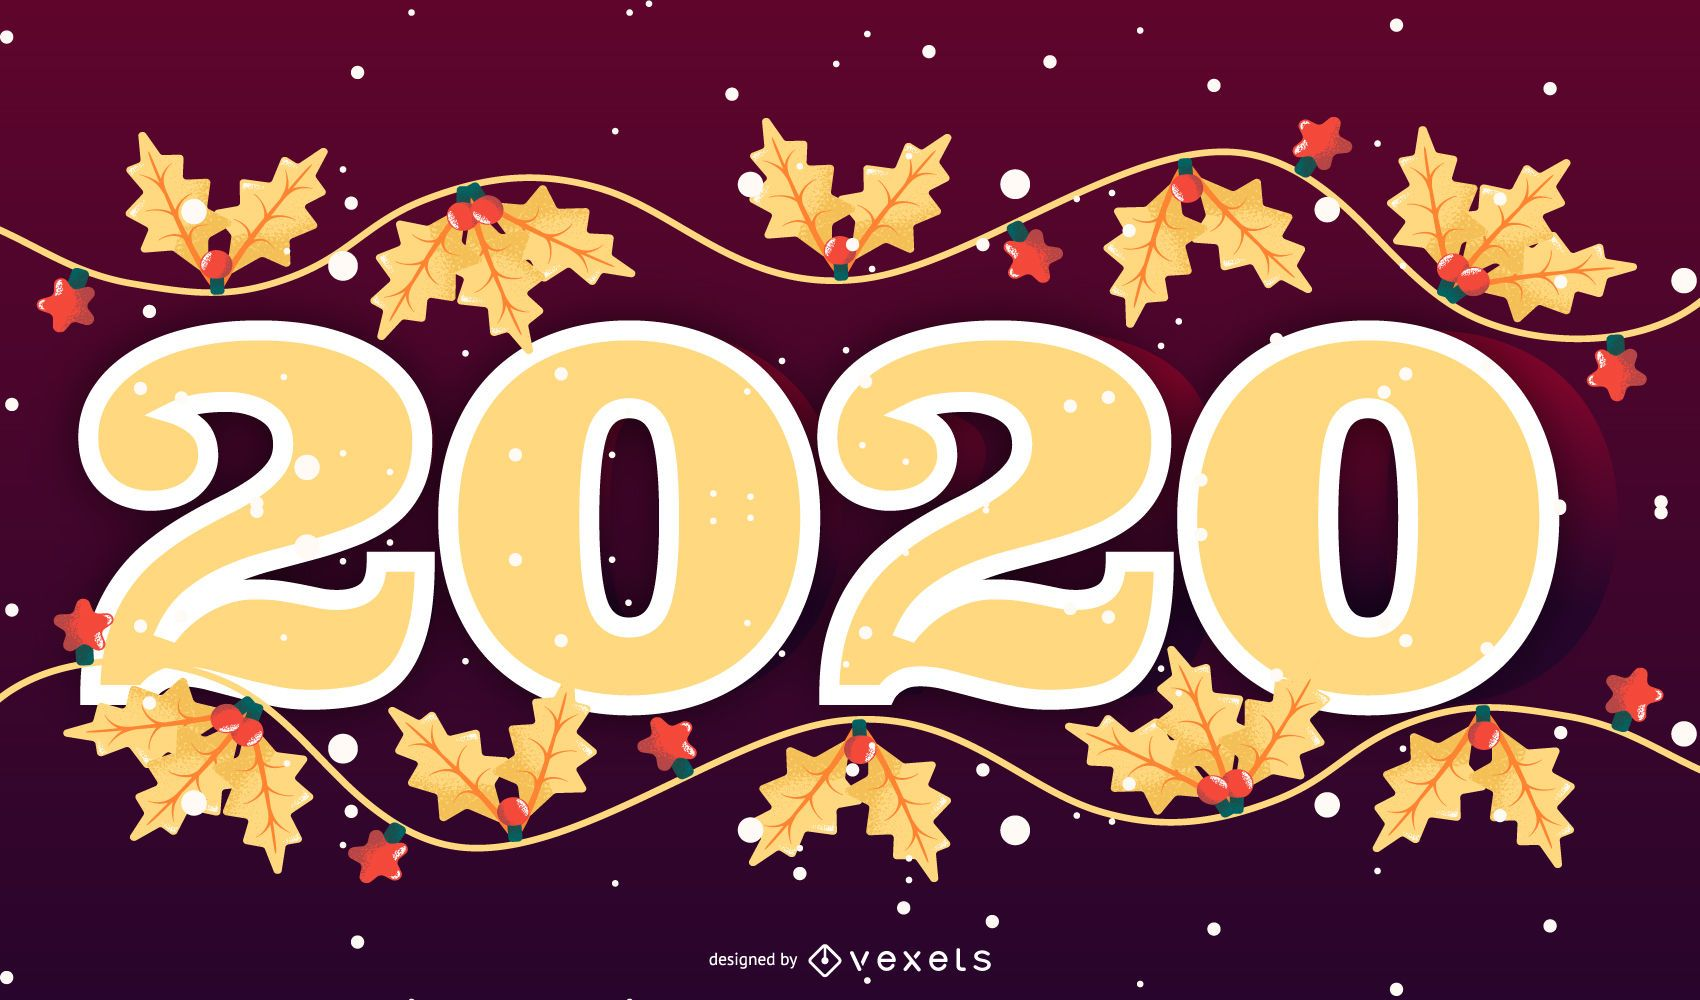 Happy 2020 Seasonal Banner Design - Vector download